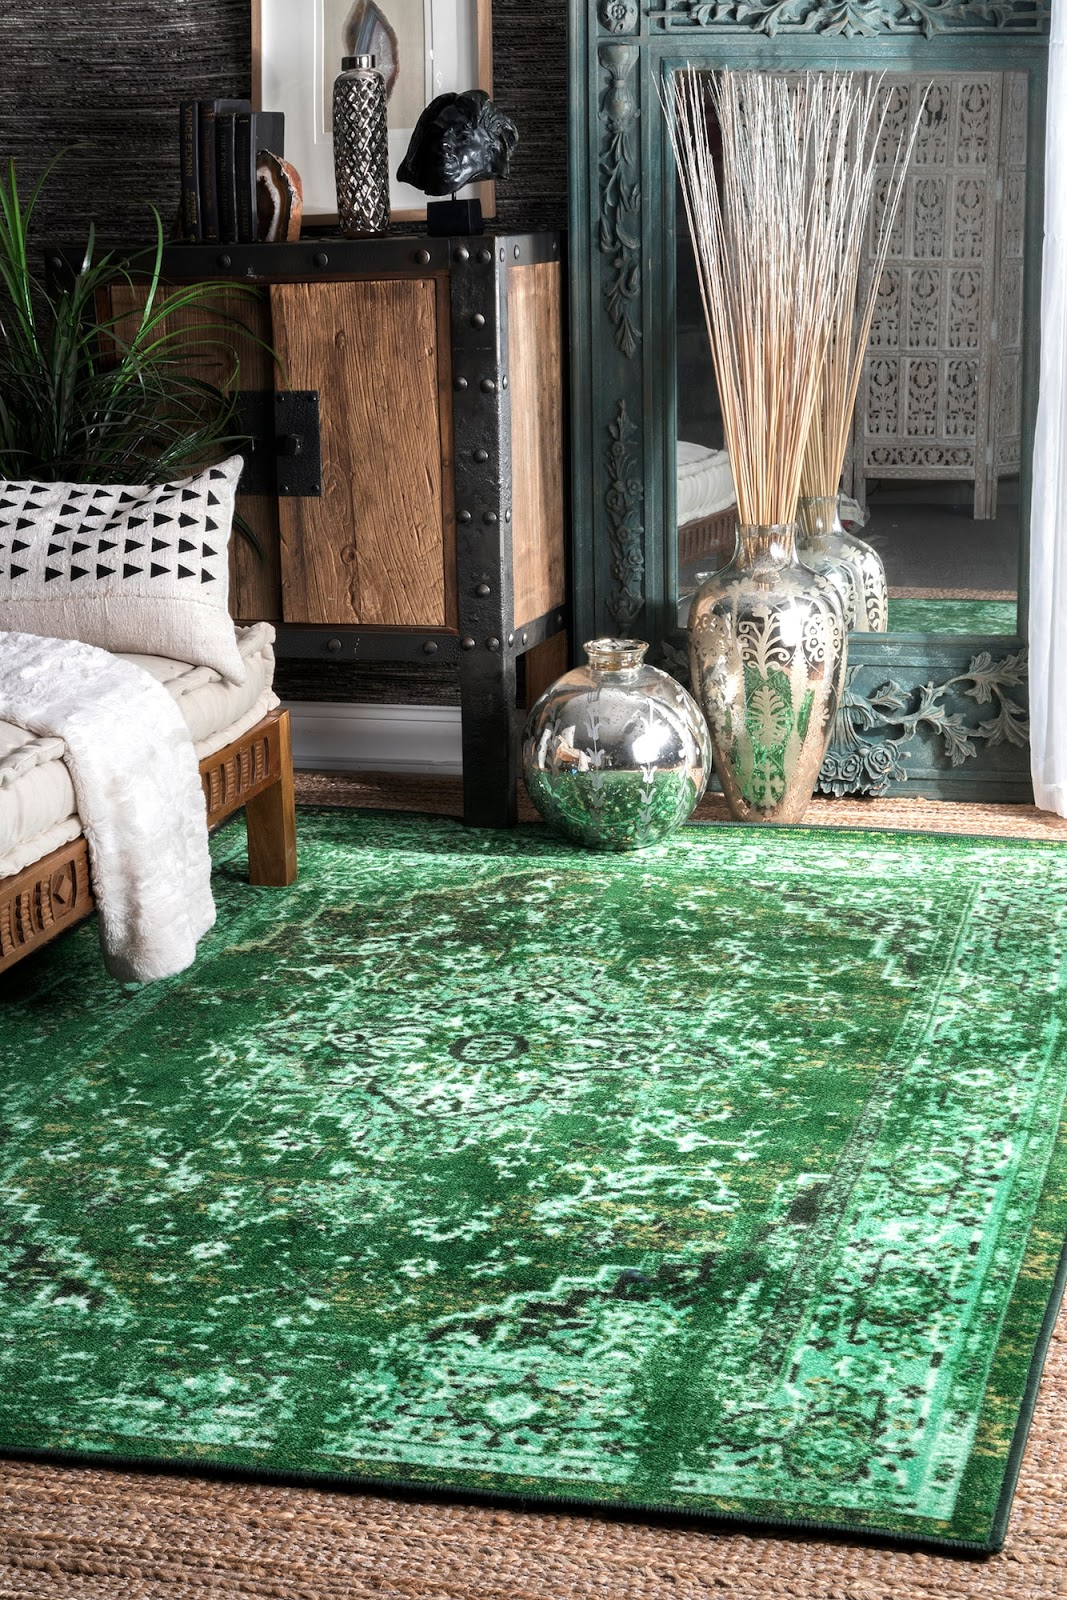 vintage style overdyed green area rug in living room